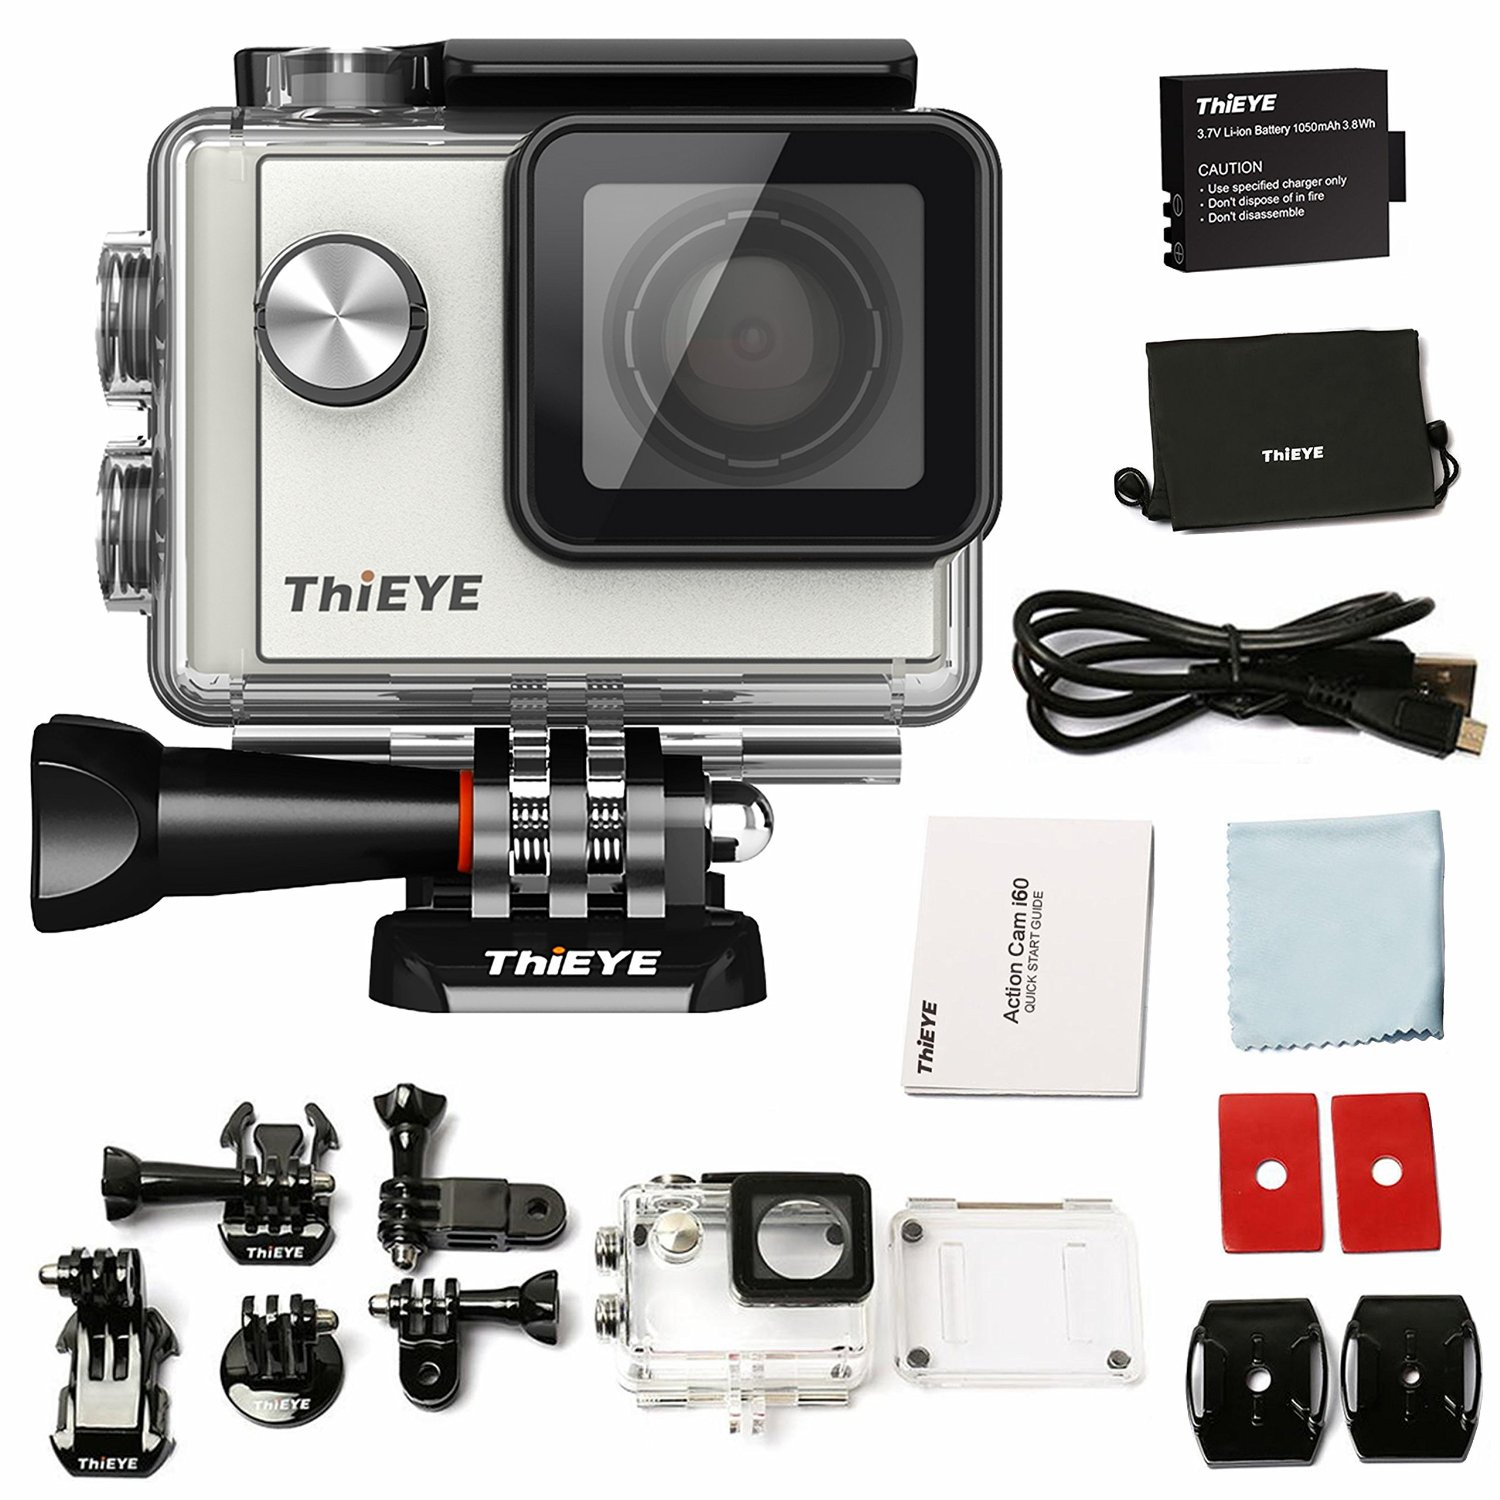 """ThiEYE i60 WIFI 4K Sports Action Camera Video Camcorder 12MP 1080P Full HD 130FT (40M) Waterproof 155 Degree Wide Angle Lens 1.5"""" LCD Screen 4X Optical Zoom For Outdoors, Including Accessories"""